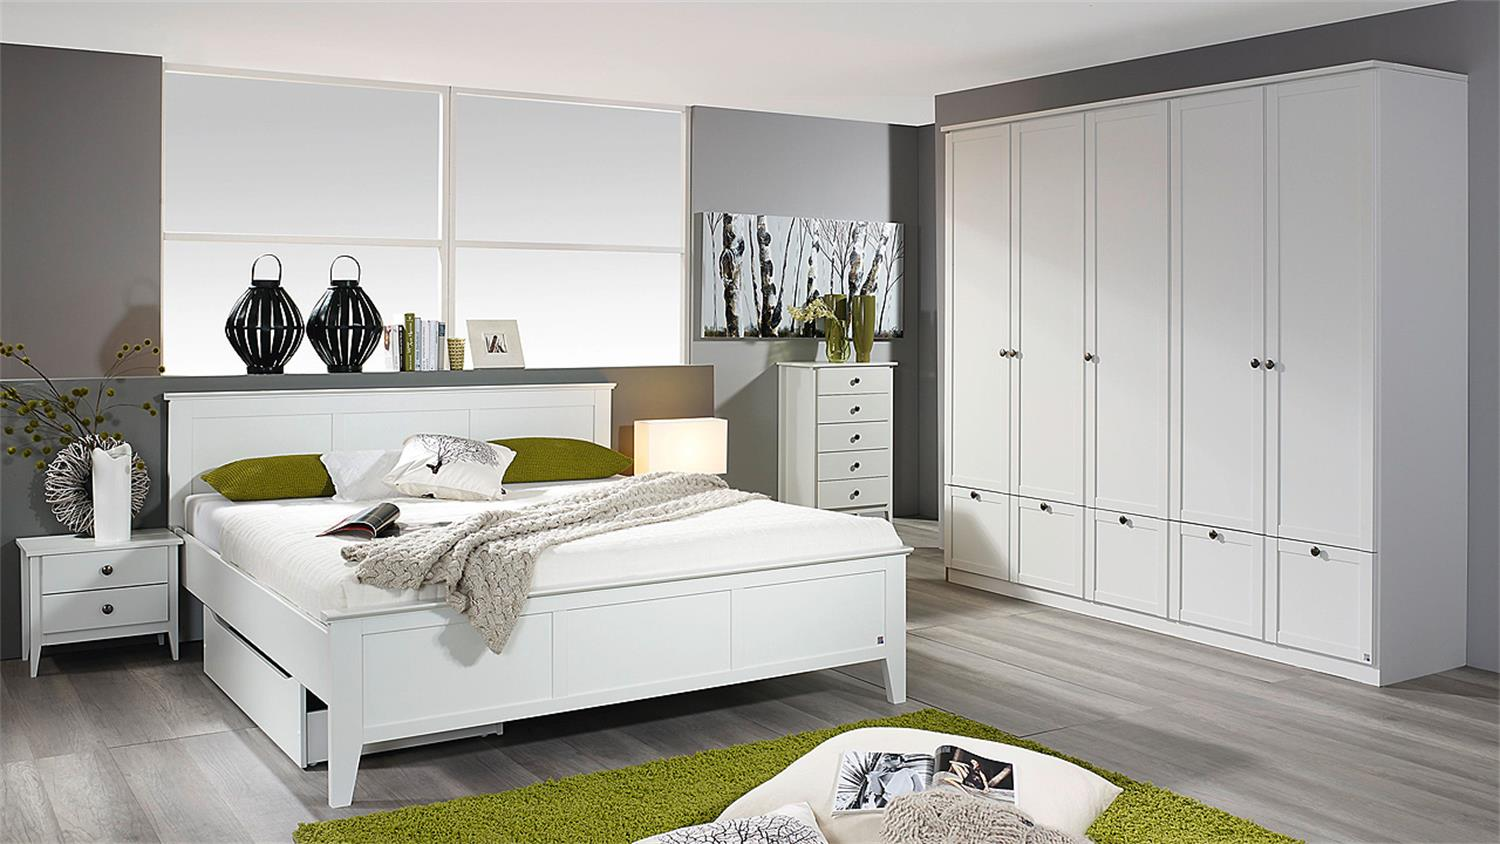 schlafzimmer rosenheim gera bett schrank nachttisch in wei. Black Bedroom Furniture Sets. Home Design Ideas